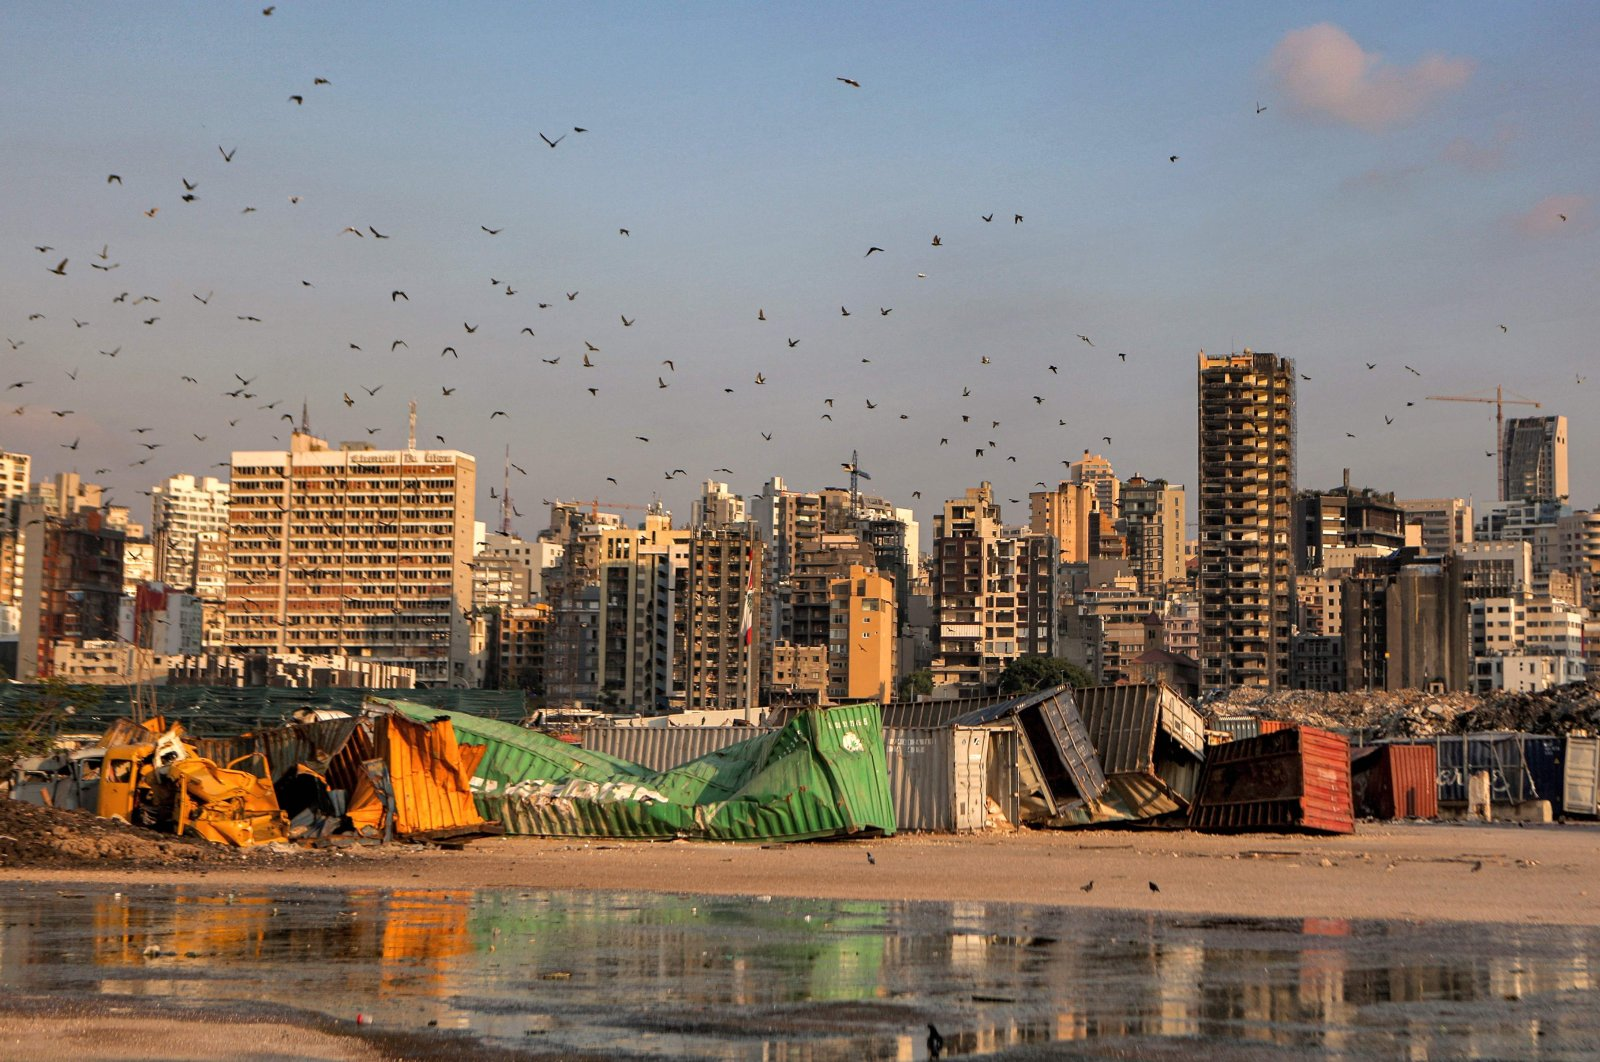 Pigeons fly over destroyed containers at the port of Beirut, Lebanon, July 14, 2021. (AFP Photo)